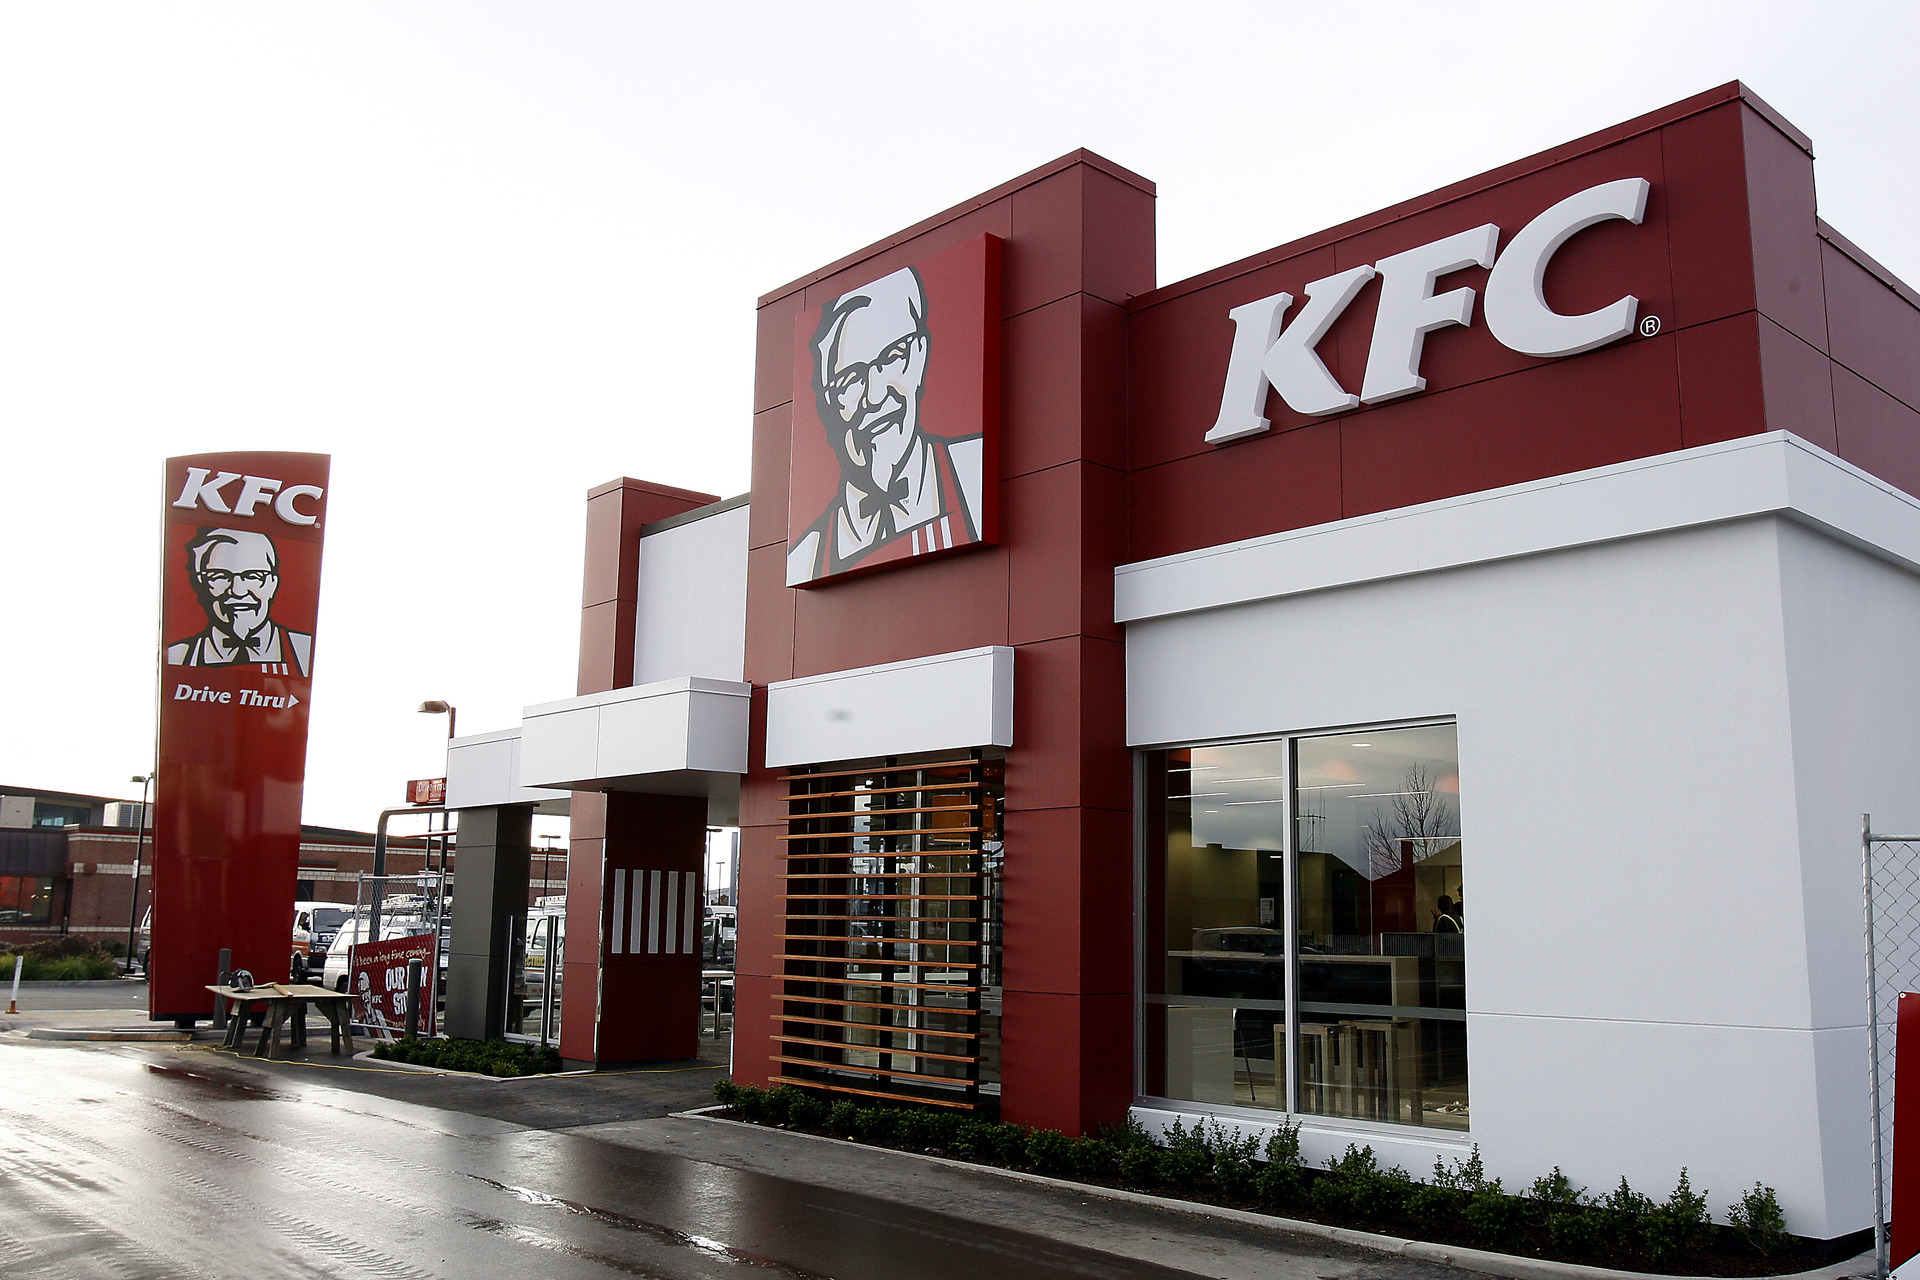 Do you want fries with that? Mexican bid for Restaurant Brands looking like a done deal